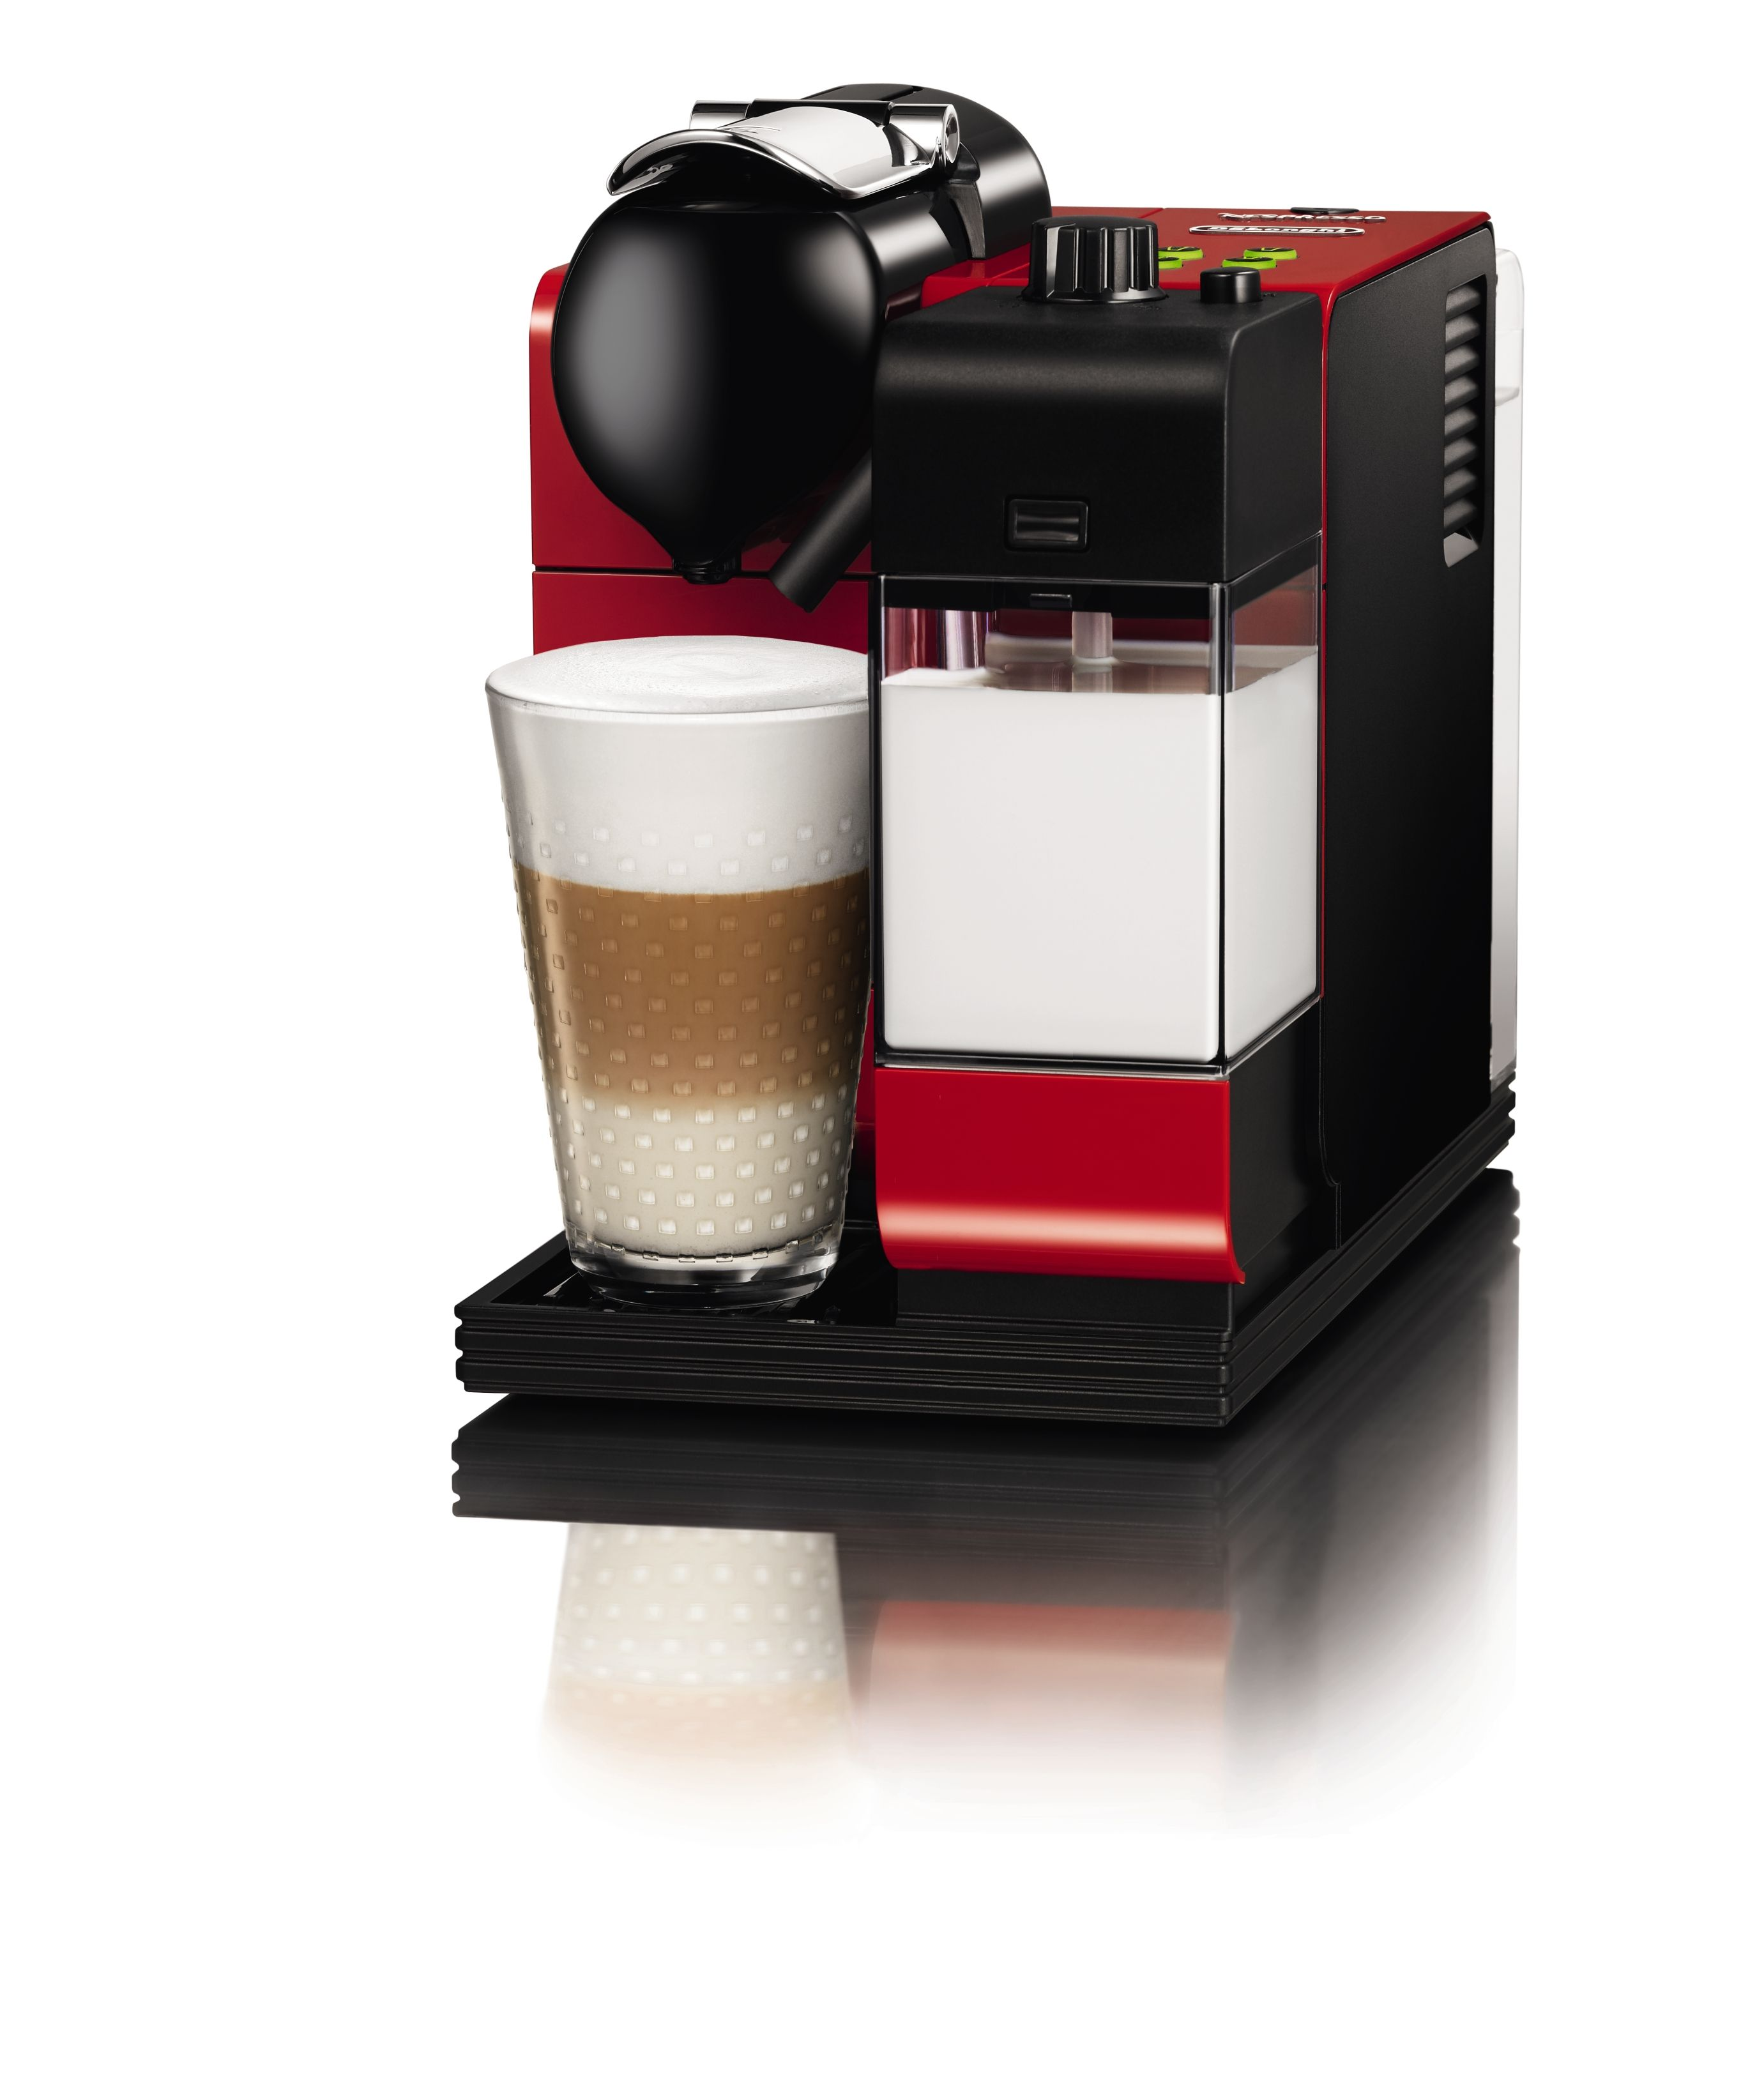 LATTISSIMA+ PASSION RED With the revolutionary milk froth